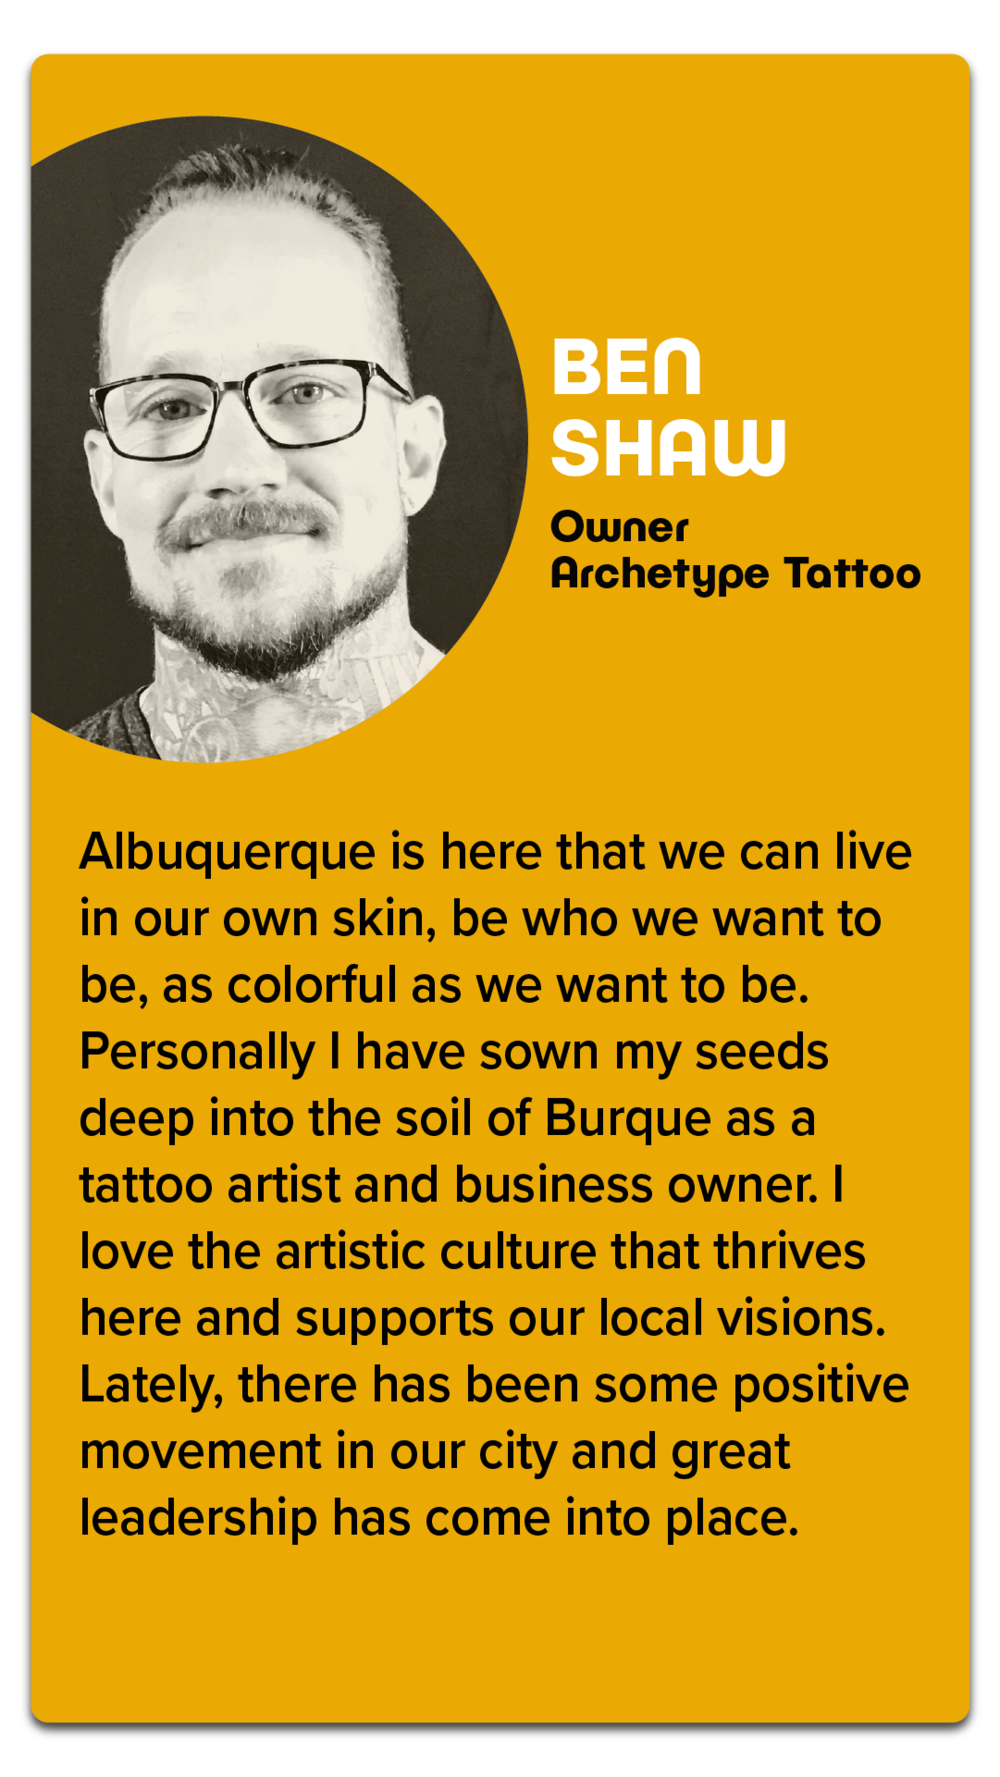 "Ben Shaw, Owner, Archetype Tattoo  ""Albuquerque is here that we can live in our own skin, be who we want to be, as colorful as we want to be. Personally I have sown my seeds deep into the soil of Burque as a tattoo artist and business owner. I love the artistic culture that thrives here and supports our local visions. Lately, there has been some positive movement in our city and great leadership has come into place."""